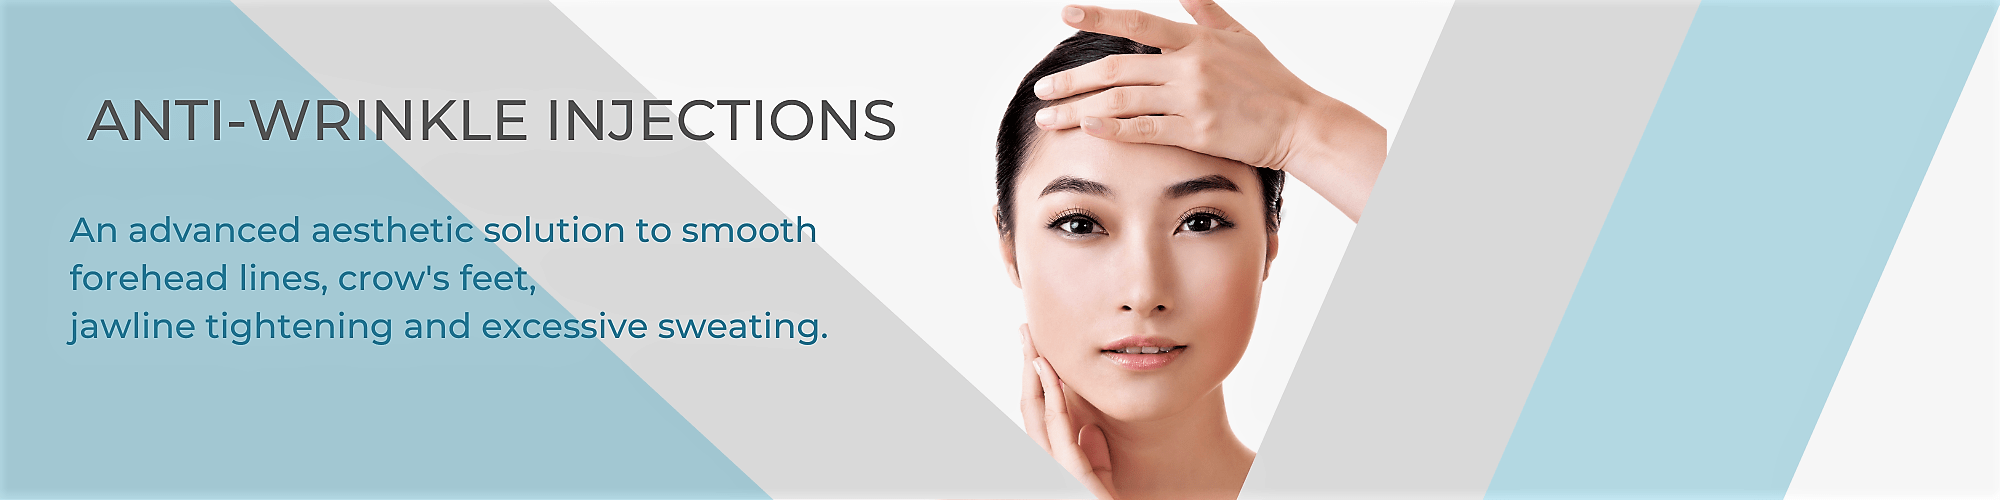 anti-wrinkles injections